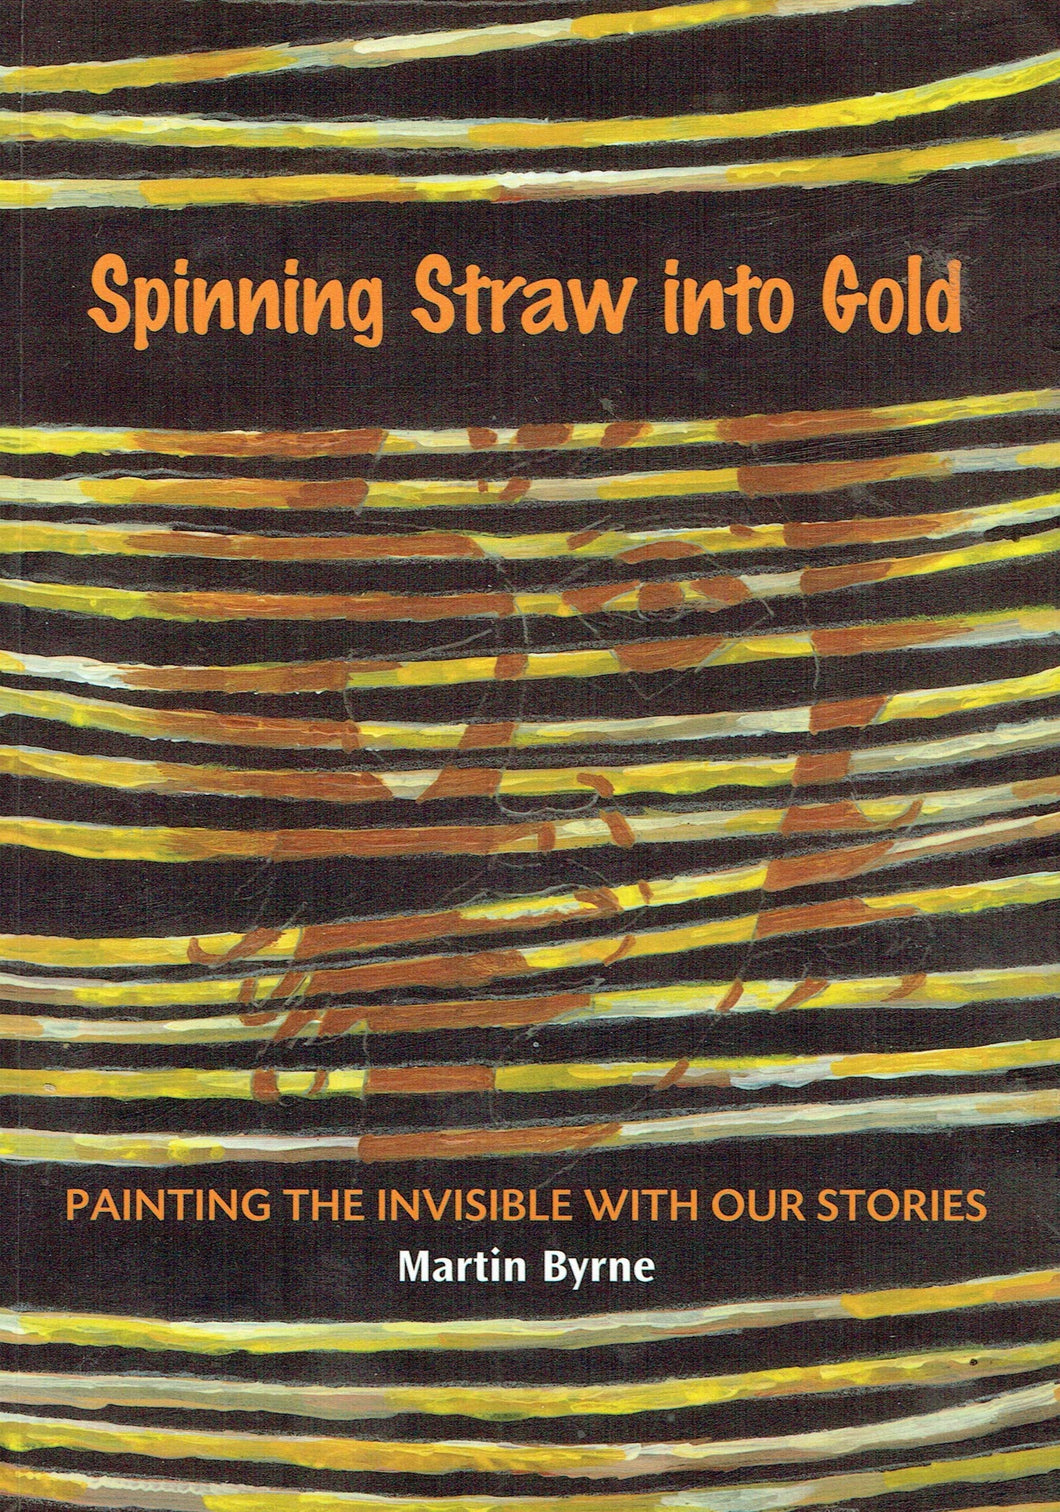 Spinning Straw into Gold: Painting the Invisible with our Stories